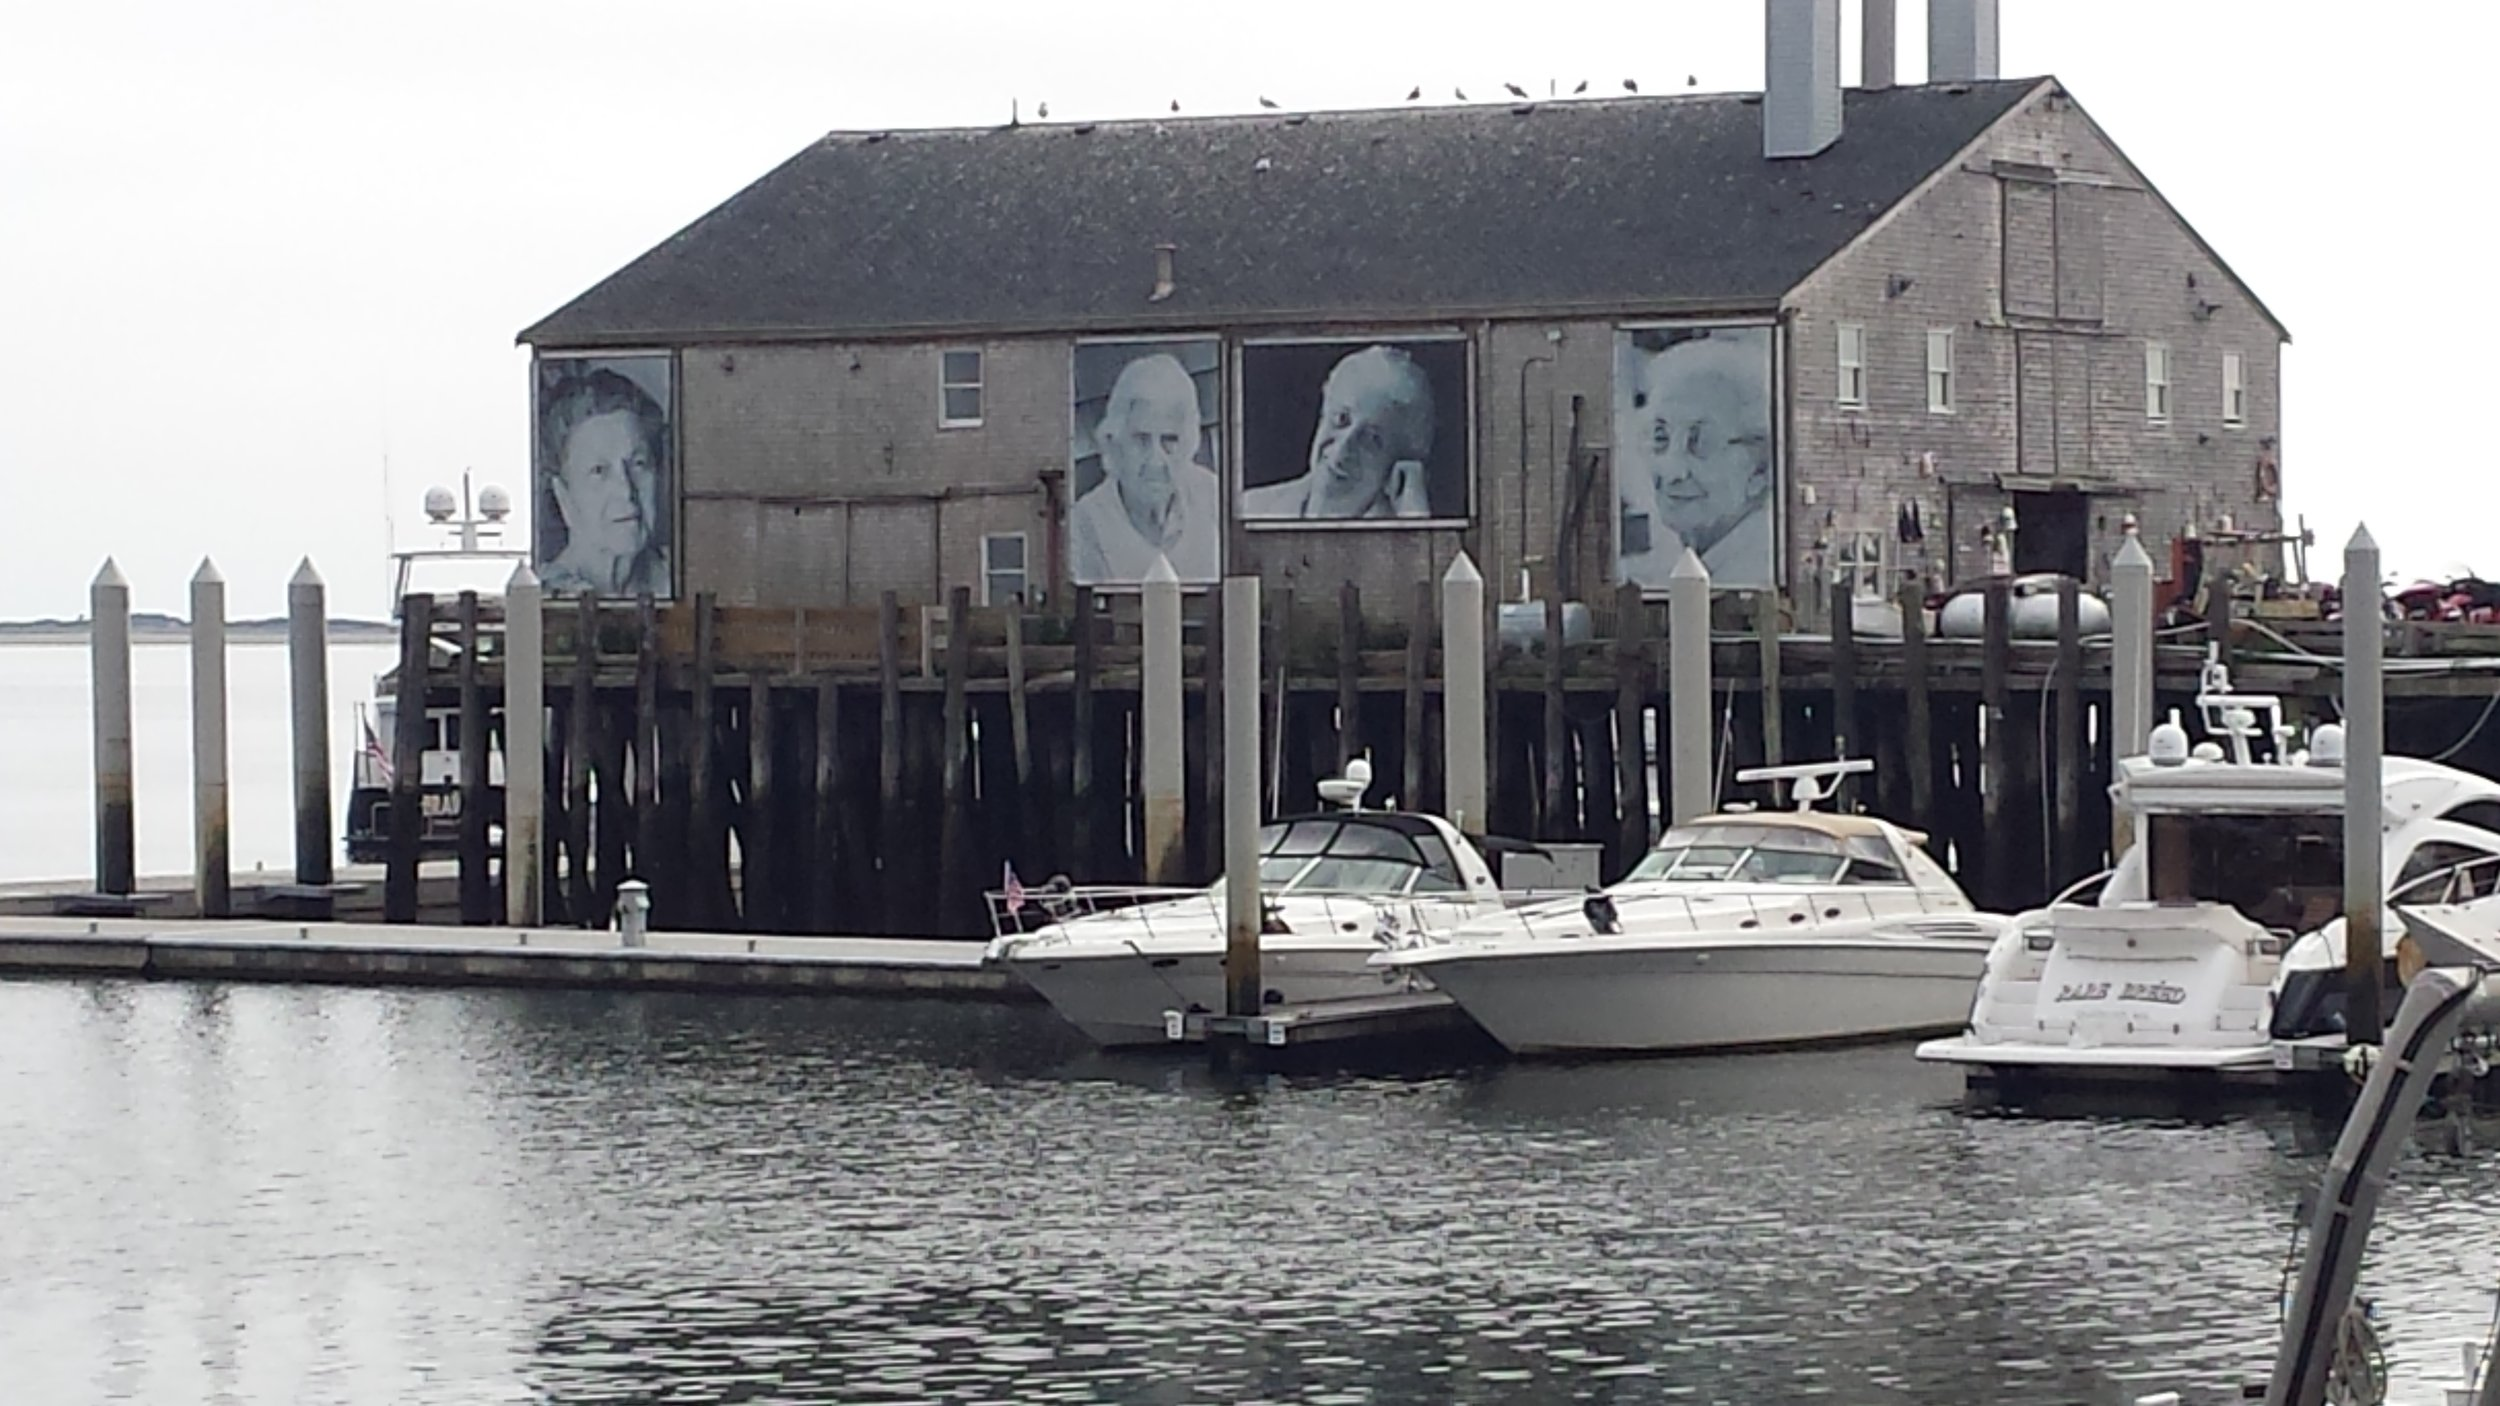 Amazing Art Installation on the Warf